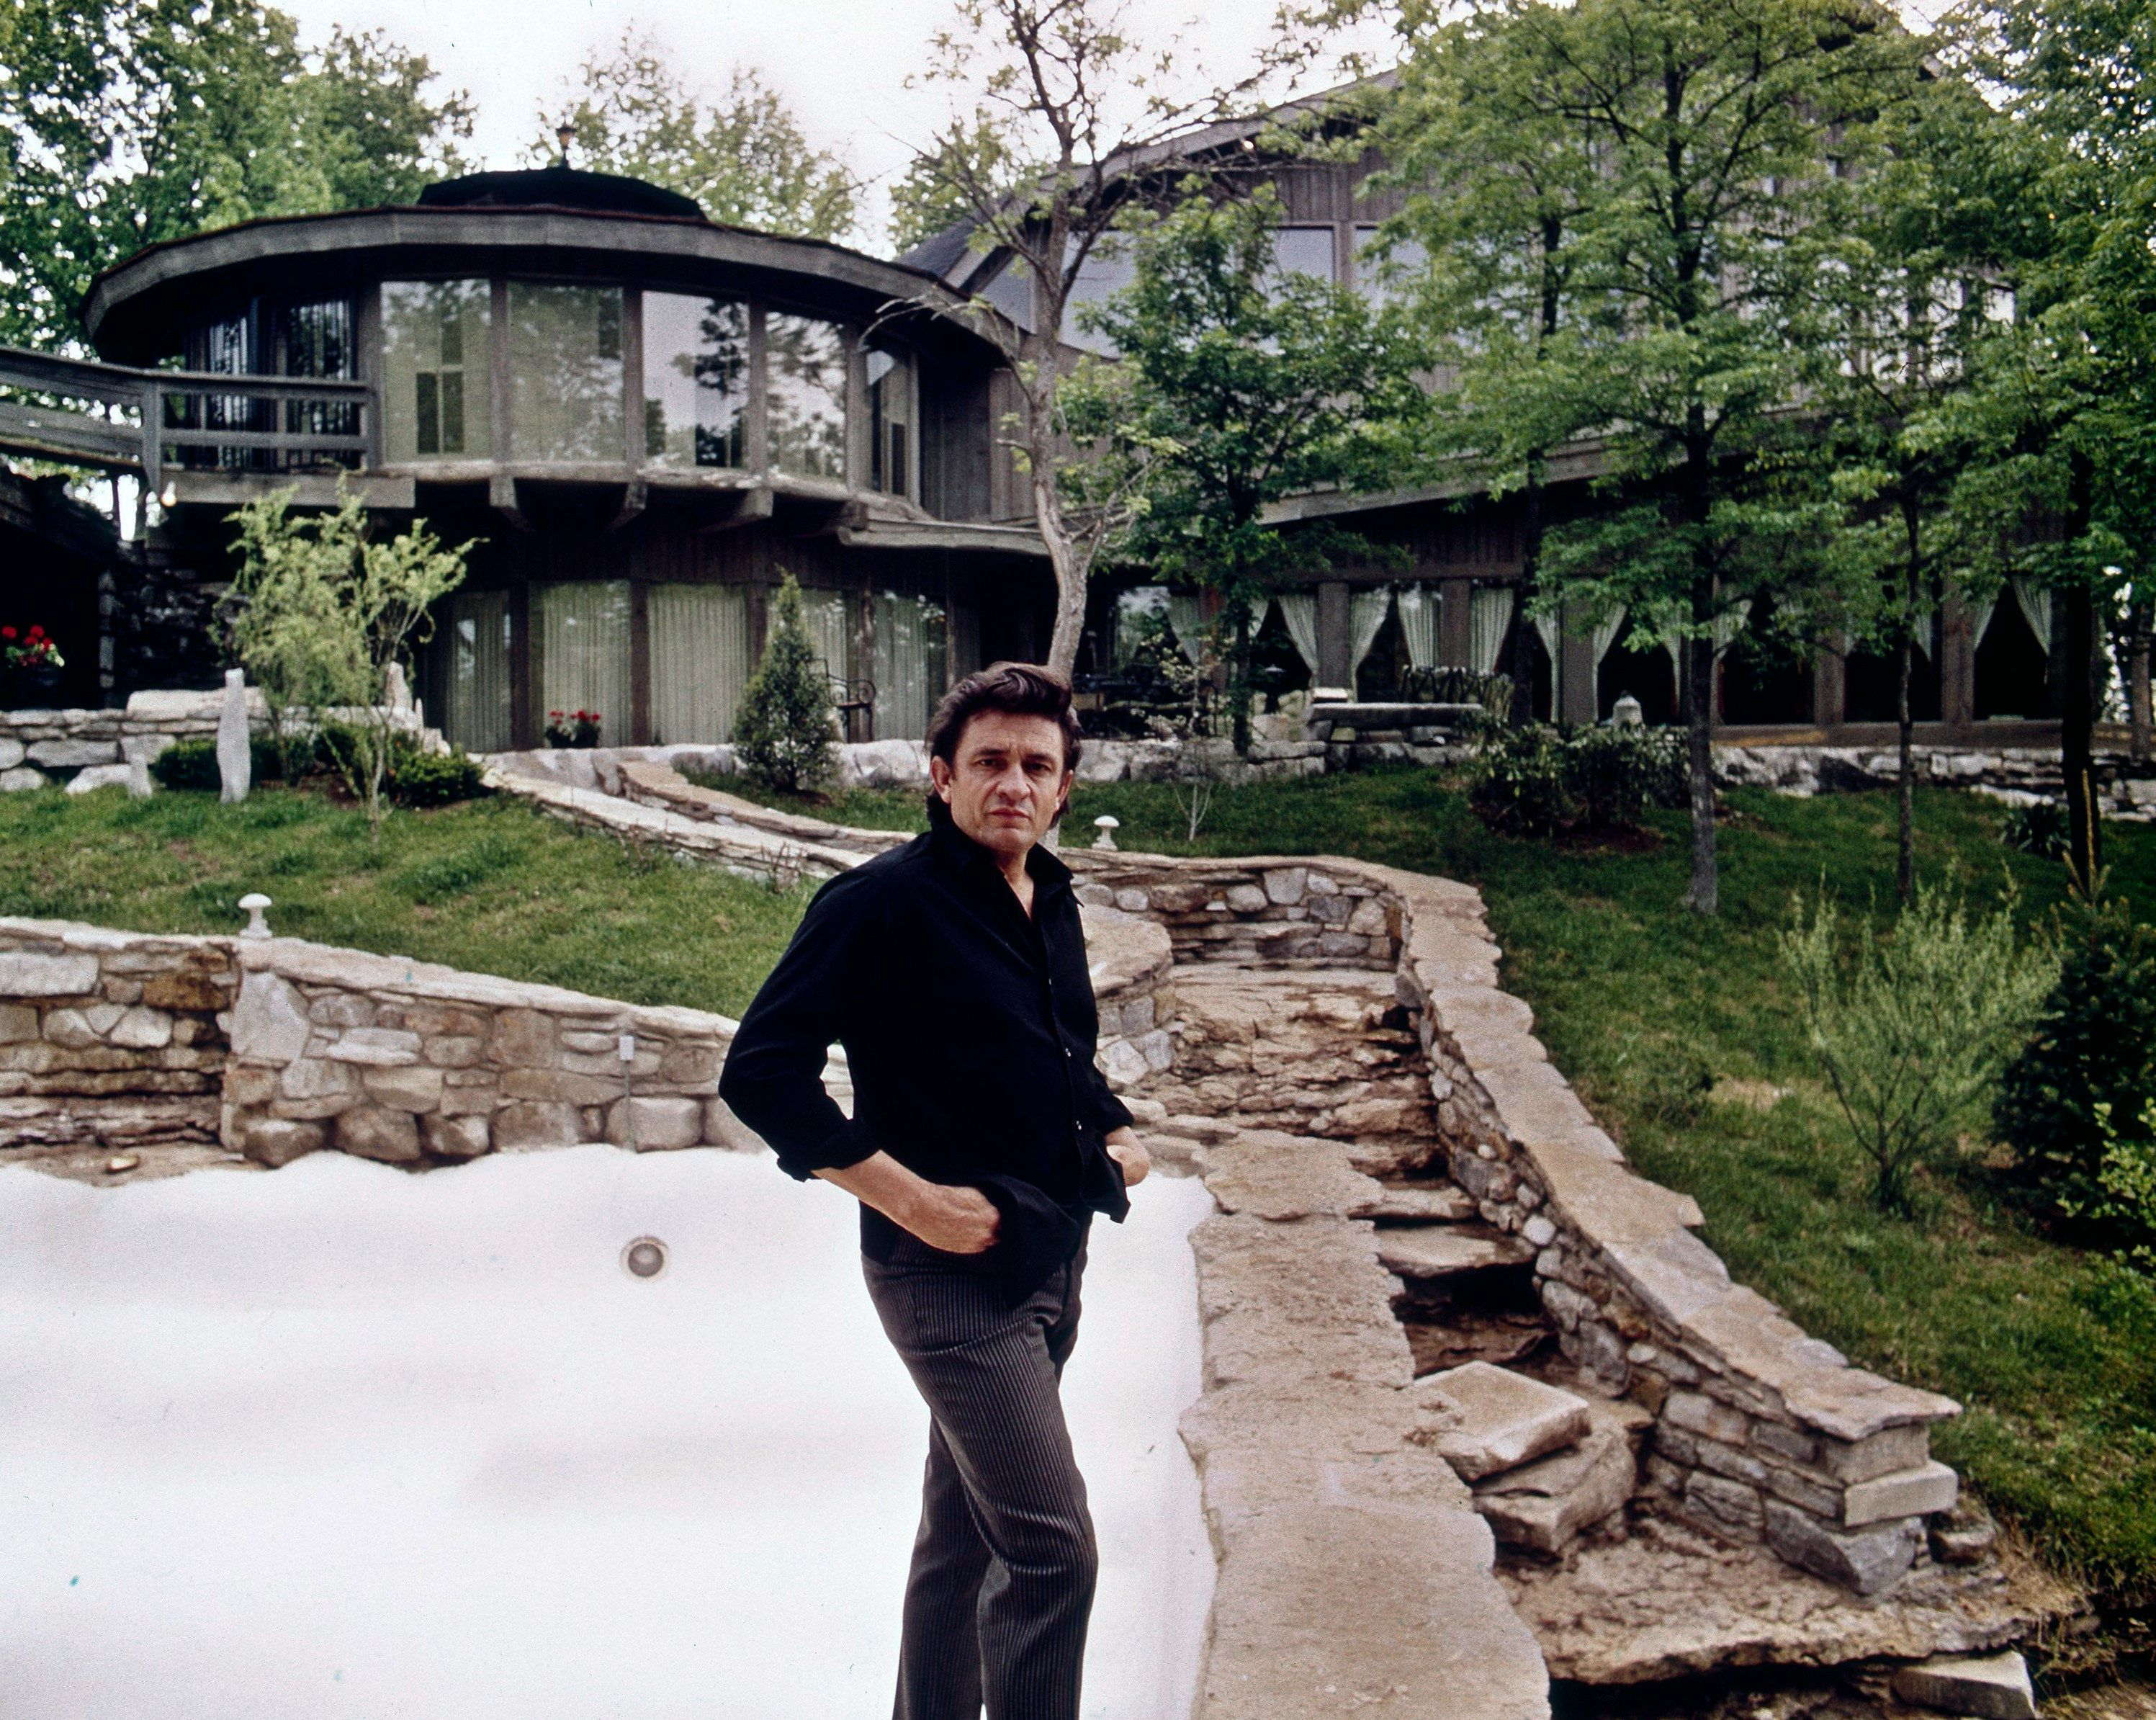 Johnny Cash outside his home Hendersonville, TN home in 1969. The original house burned down in 2007.